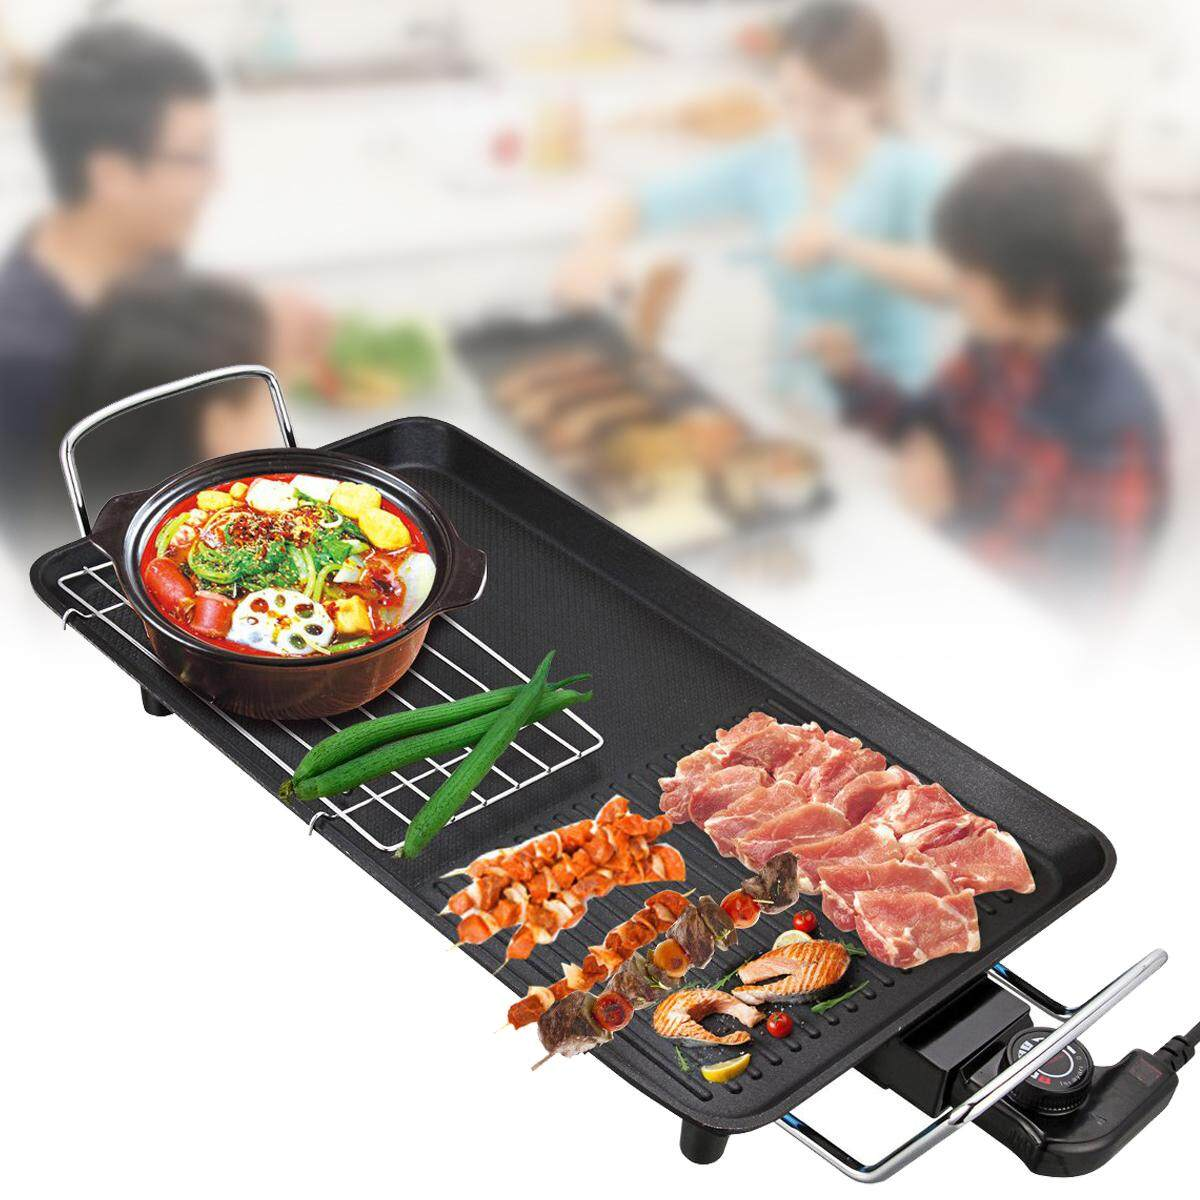 1500w 1-4 People Electric Bbq Grill Teppanyaki Griddle Non Stick Barbecue Hot Plate - Intl By Audew.